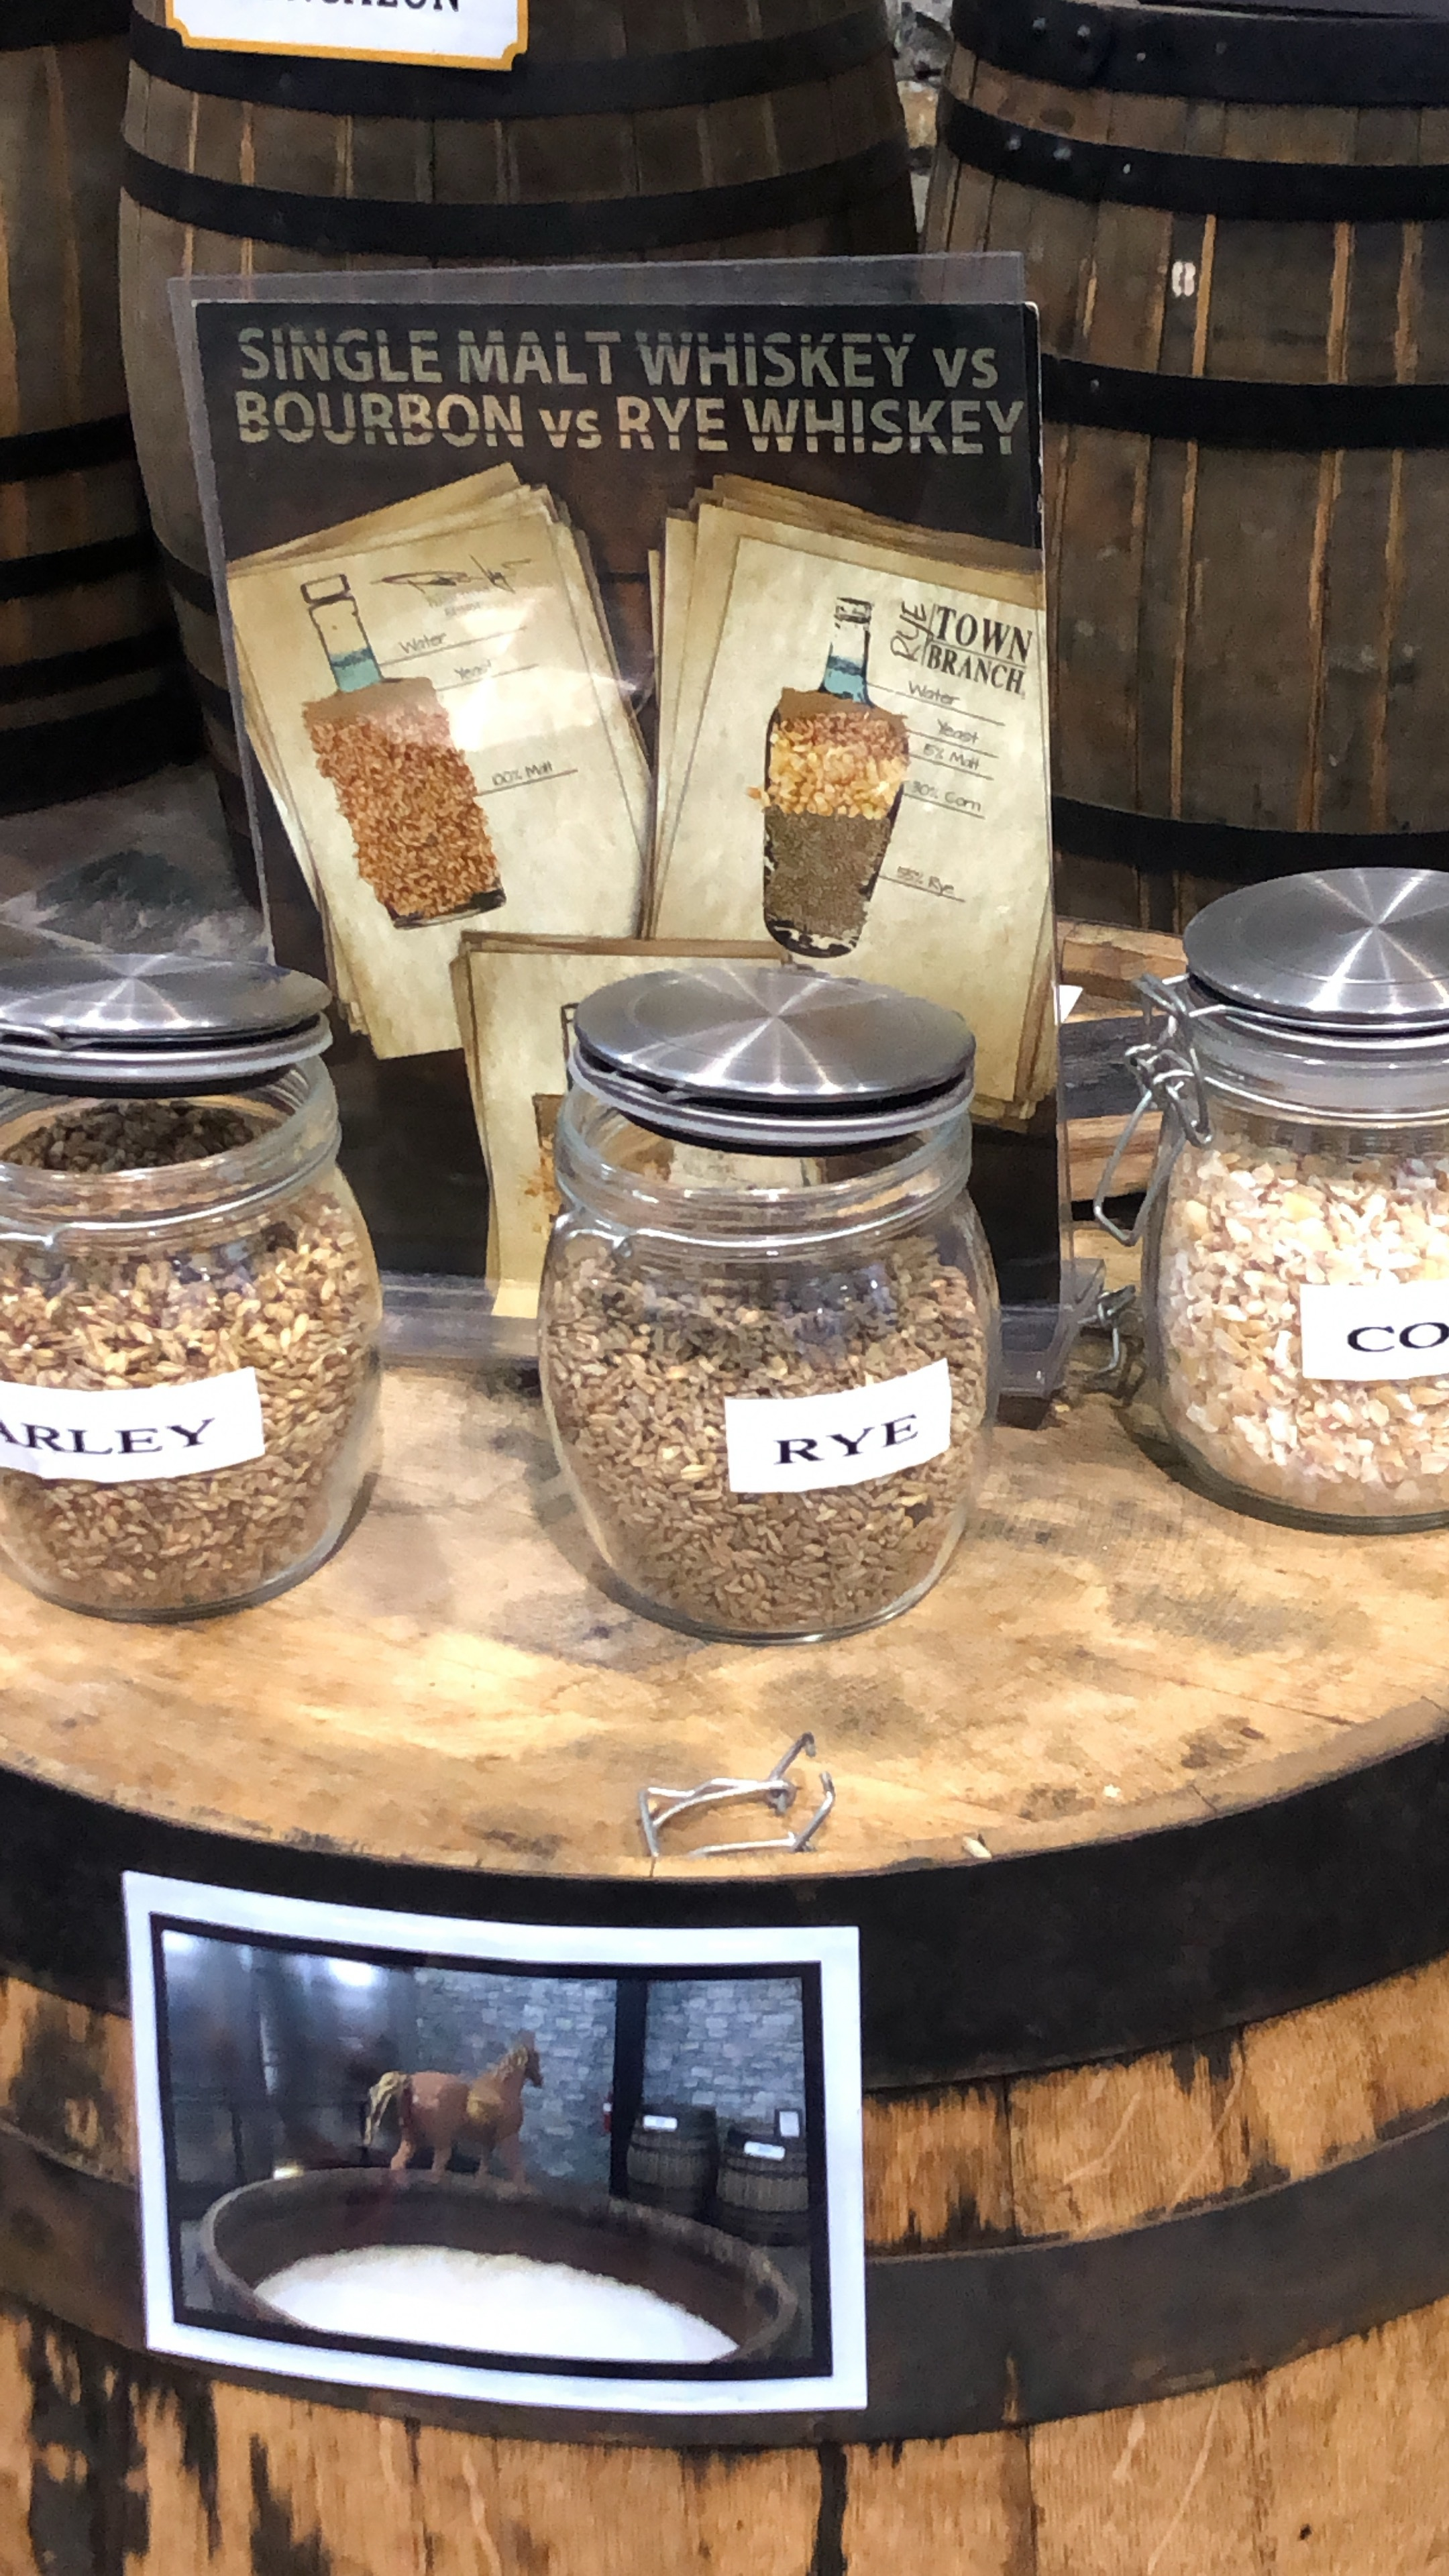 After being utilized for the distillation of bourbon, these various grains will be upcycled by cattle - and made into beef!